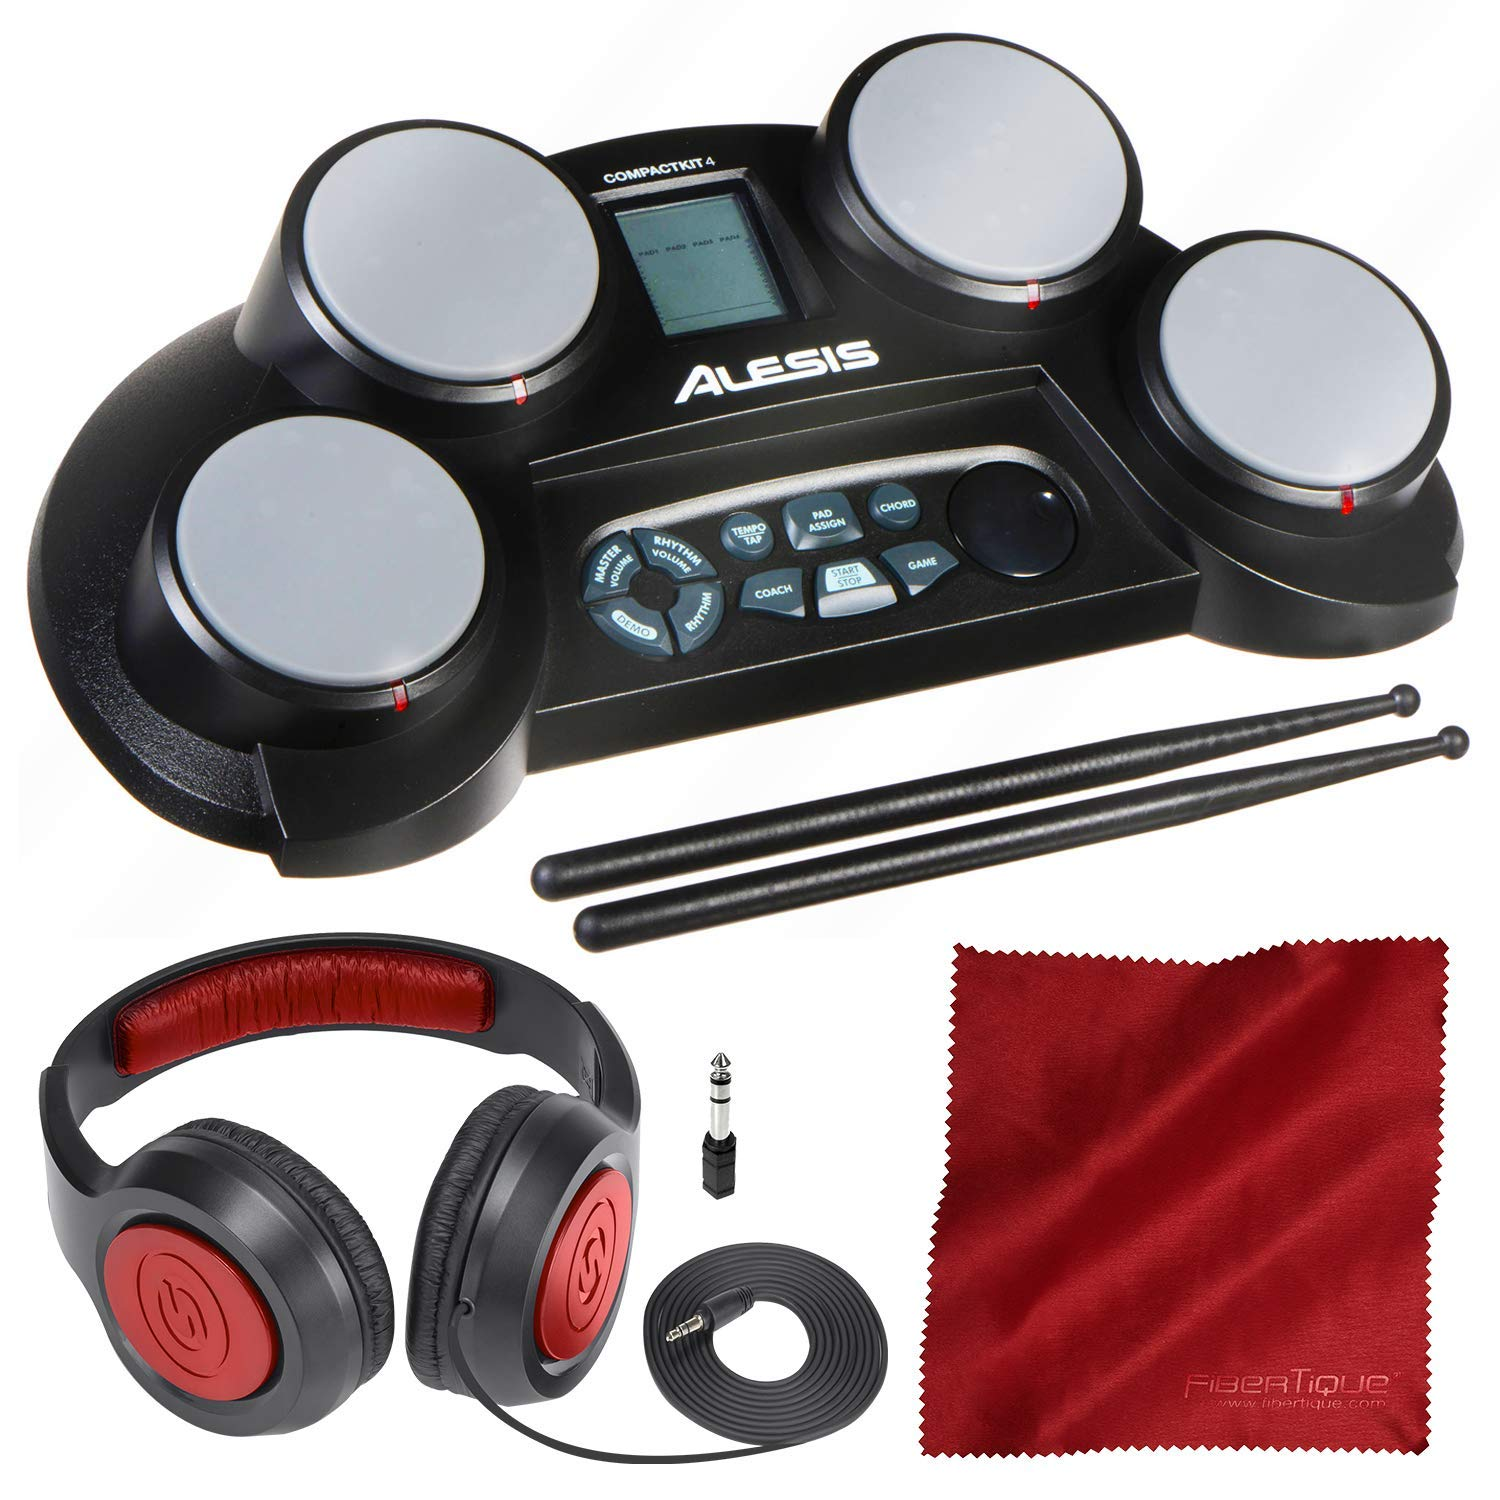 Alesis CompactKit 4 | Portable 4-Pad Tabletop Electronic Drum Kit with Drumsticks and Headphones Bundle by PS